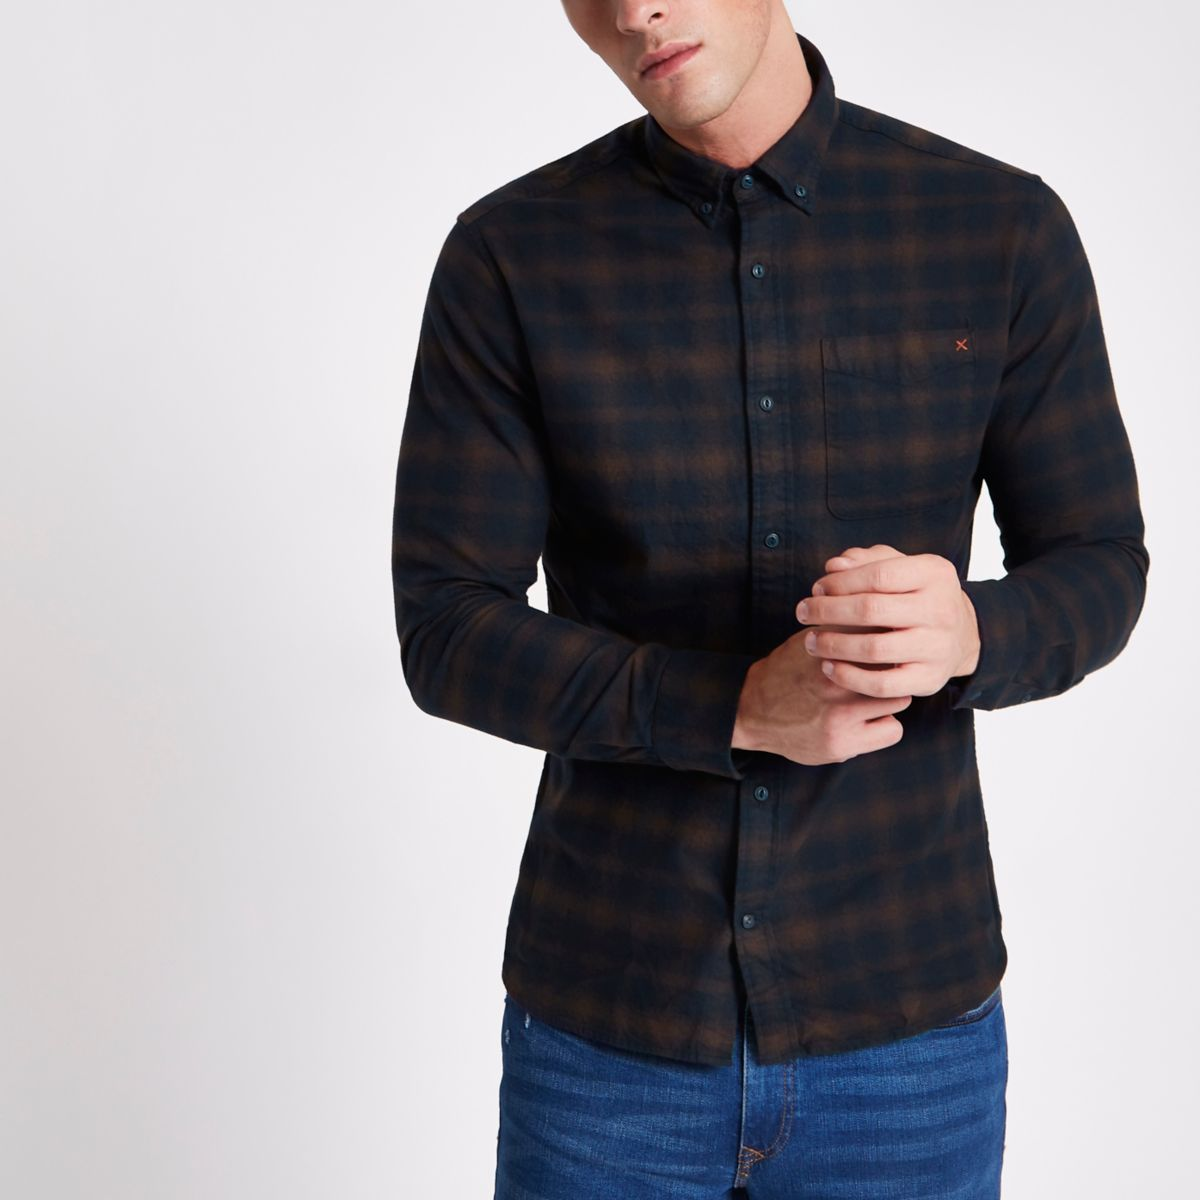 Tan and navy Jack & Jones Premium check shirt